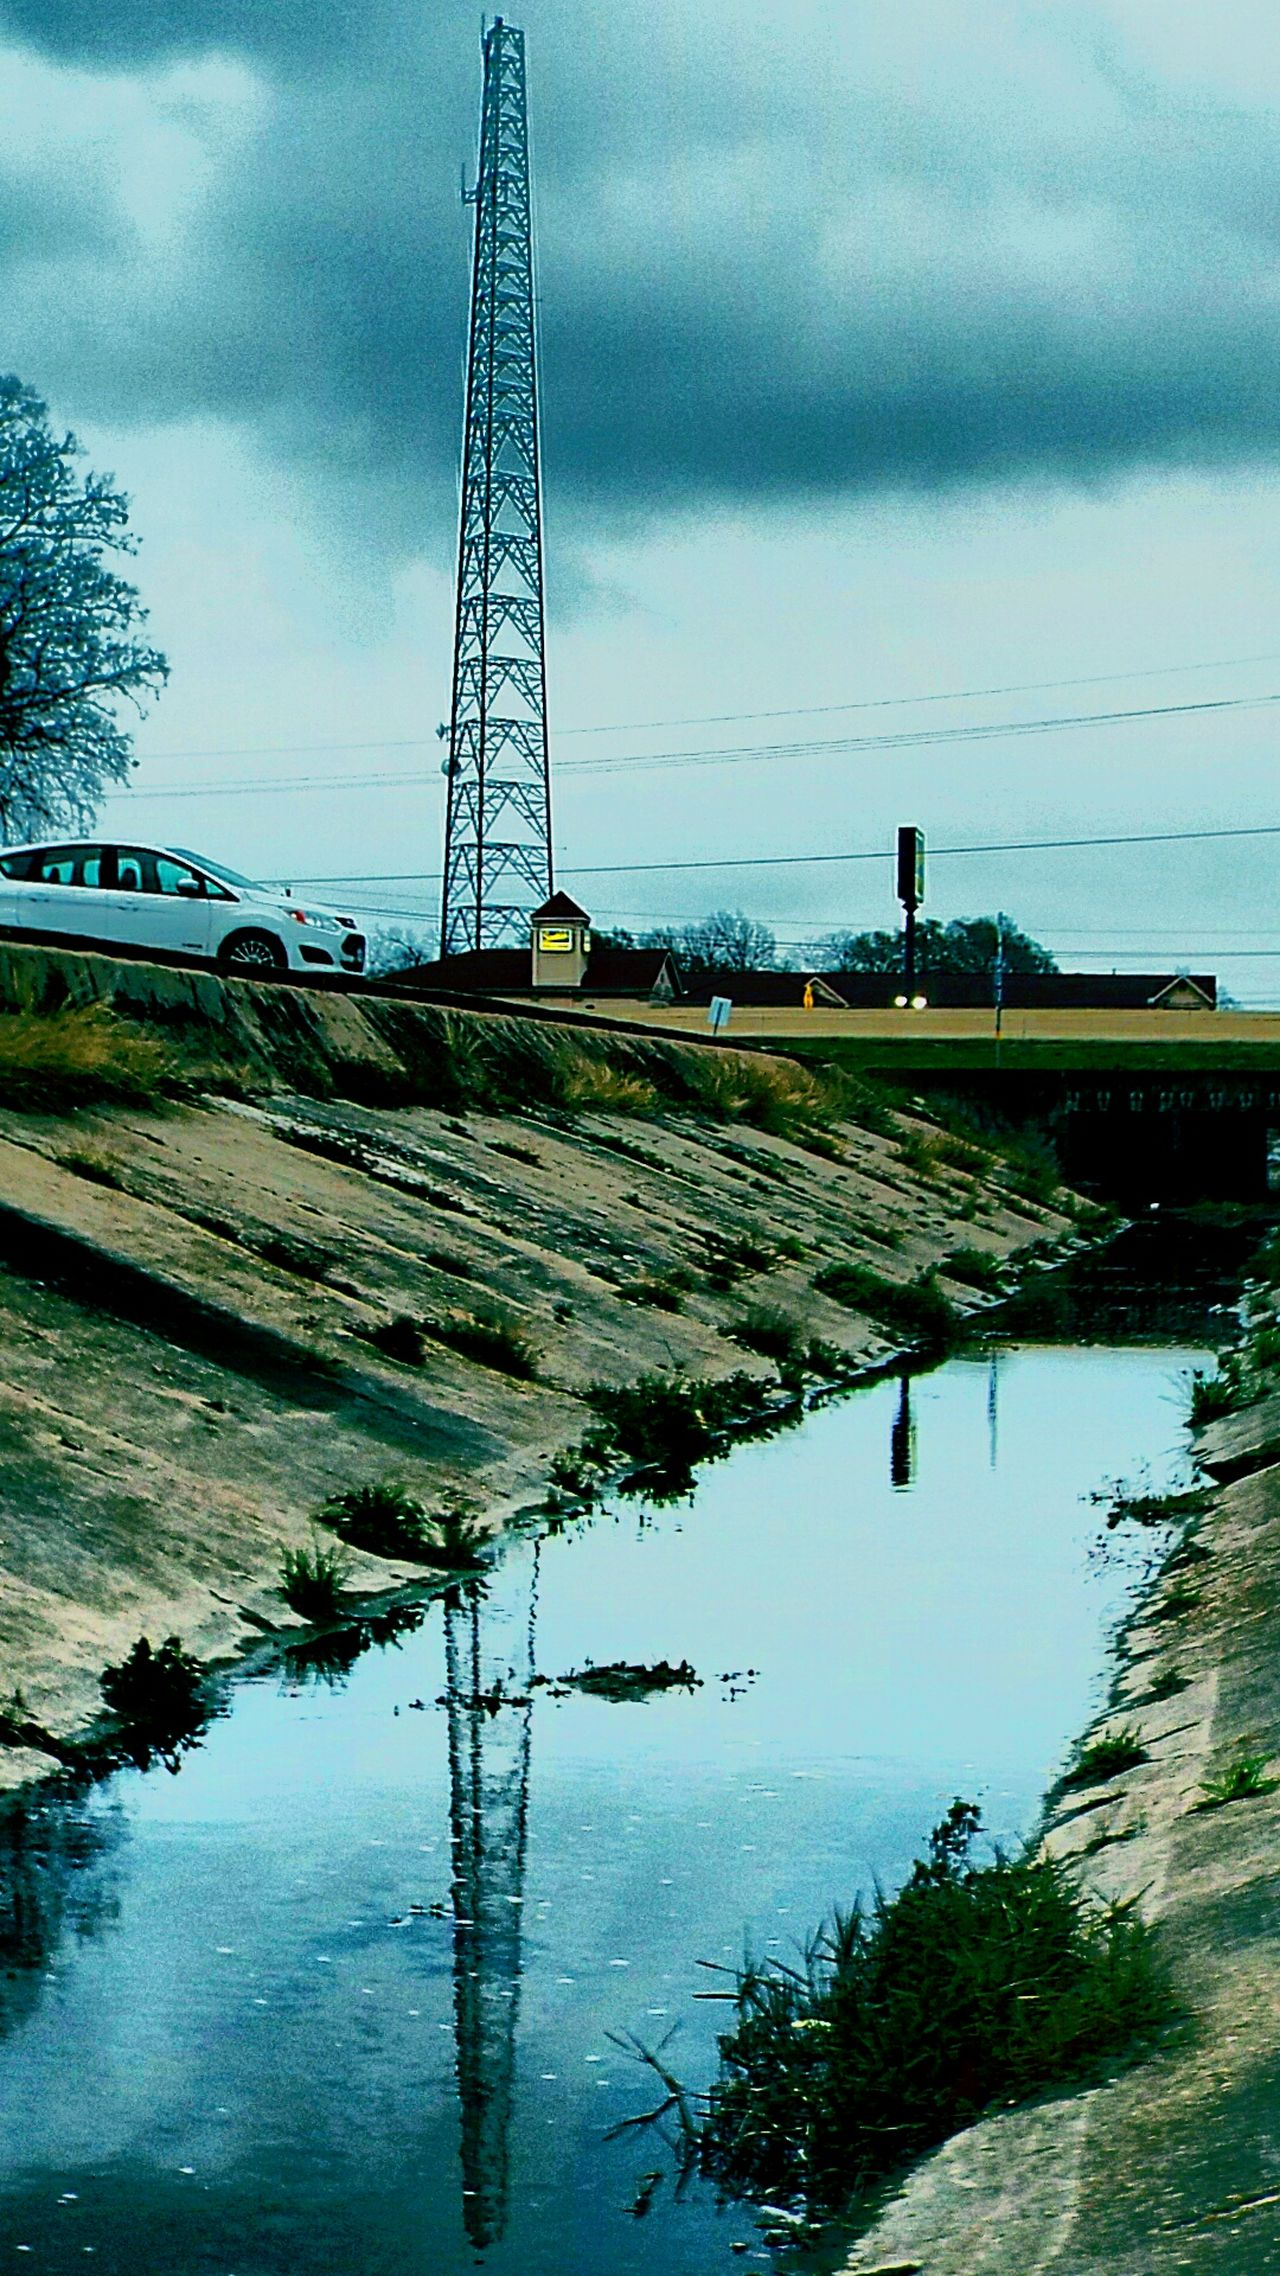 On The Bayou Drainageditch Reflection Of Satellite Tower In The Ditchwater Dusk Gloomy Days